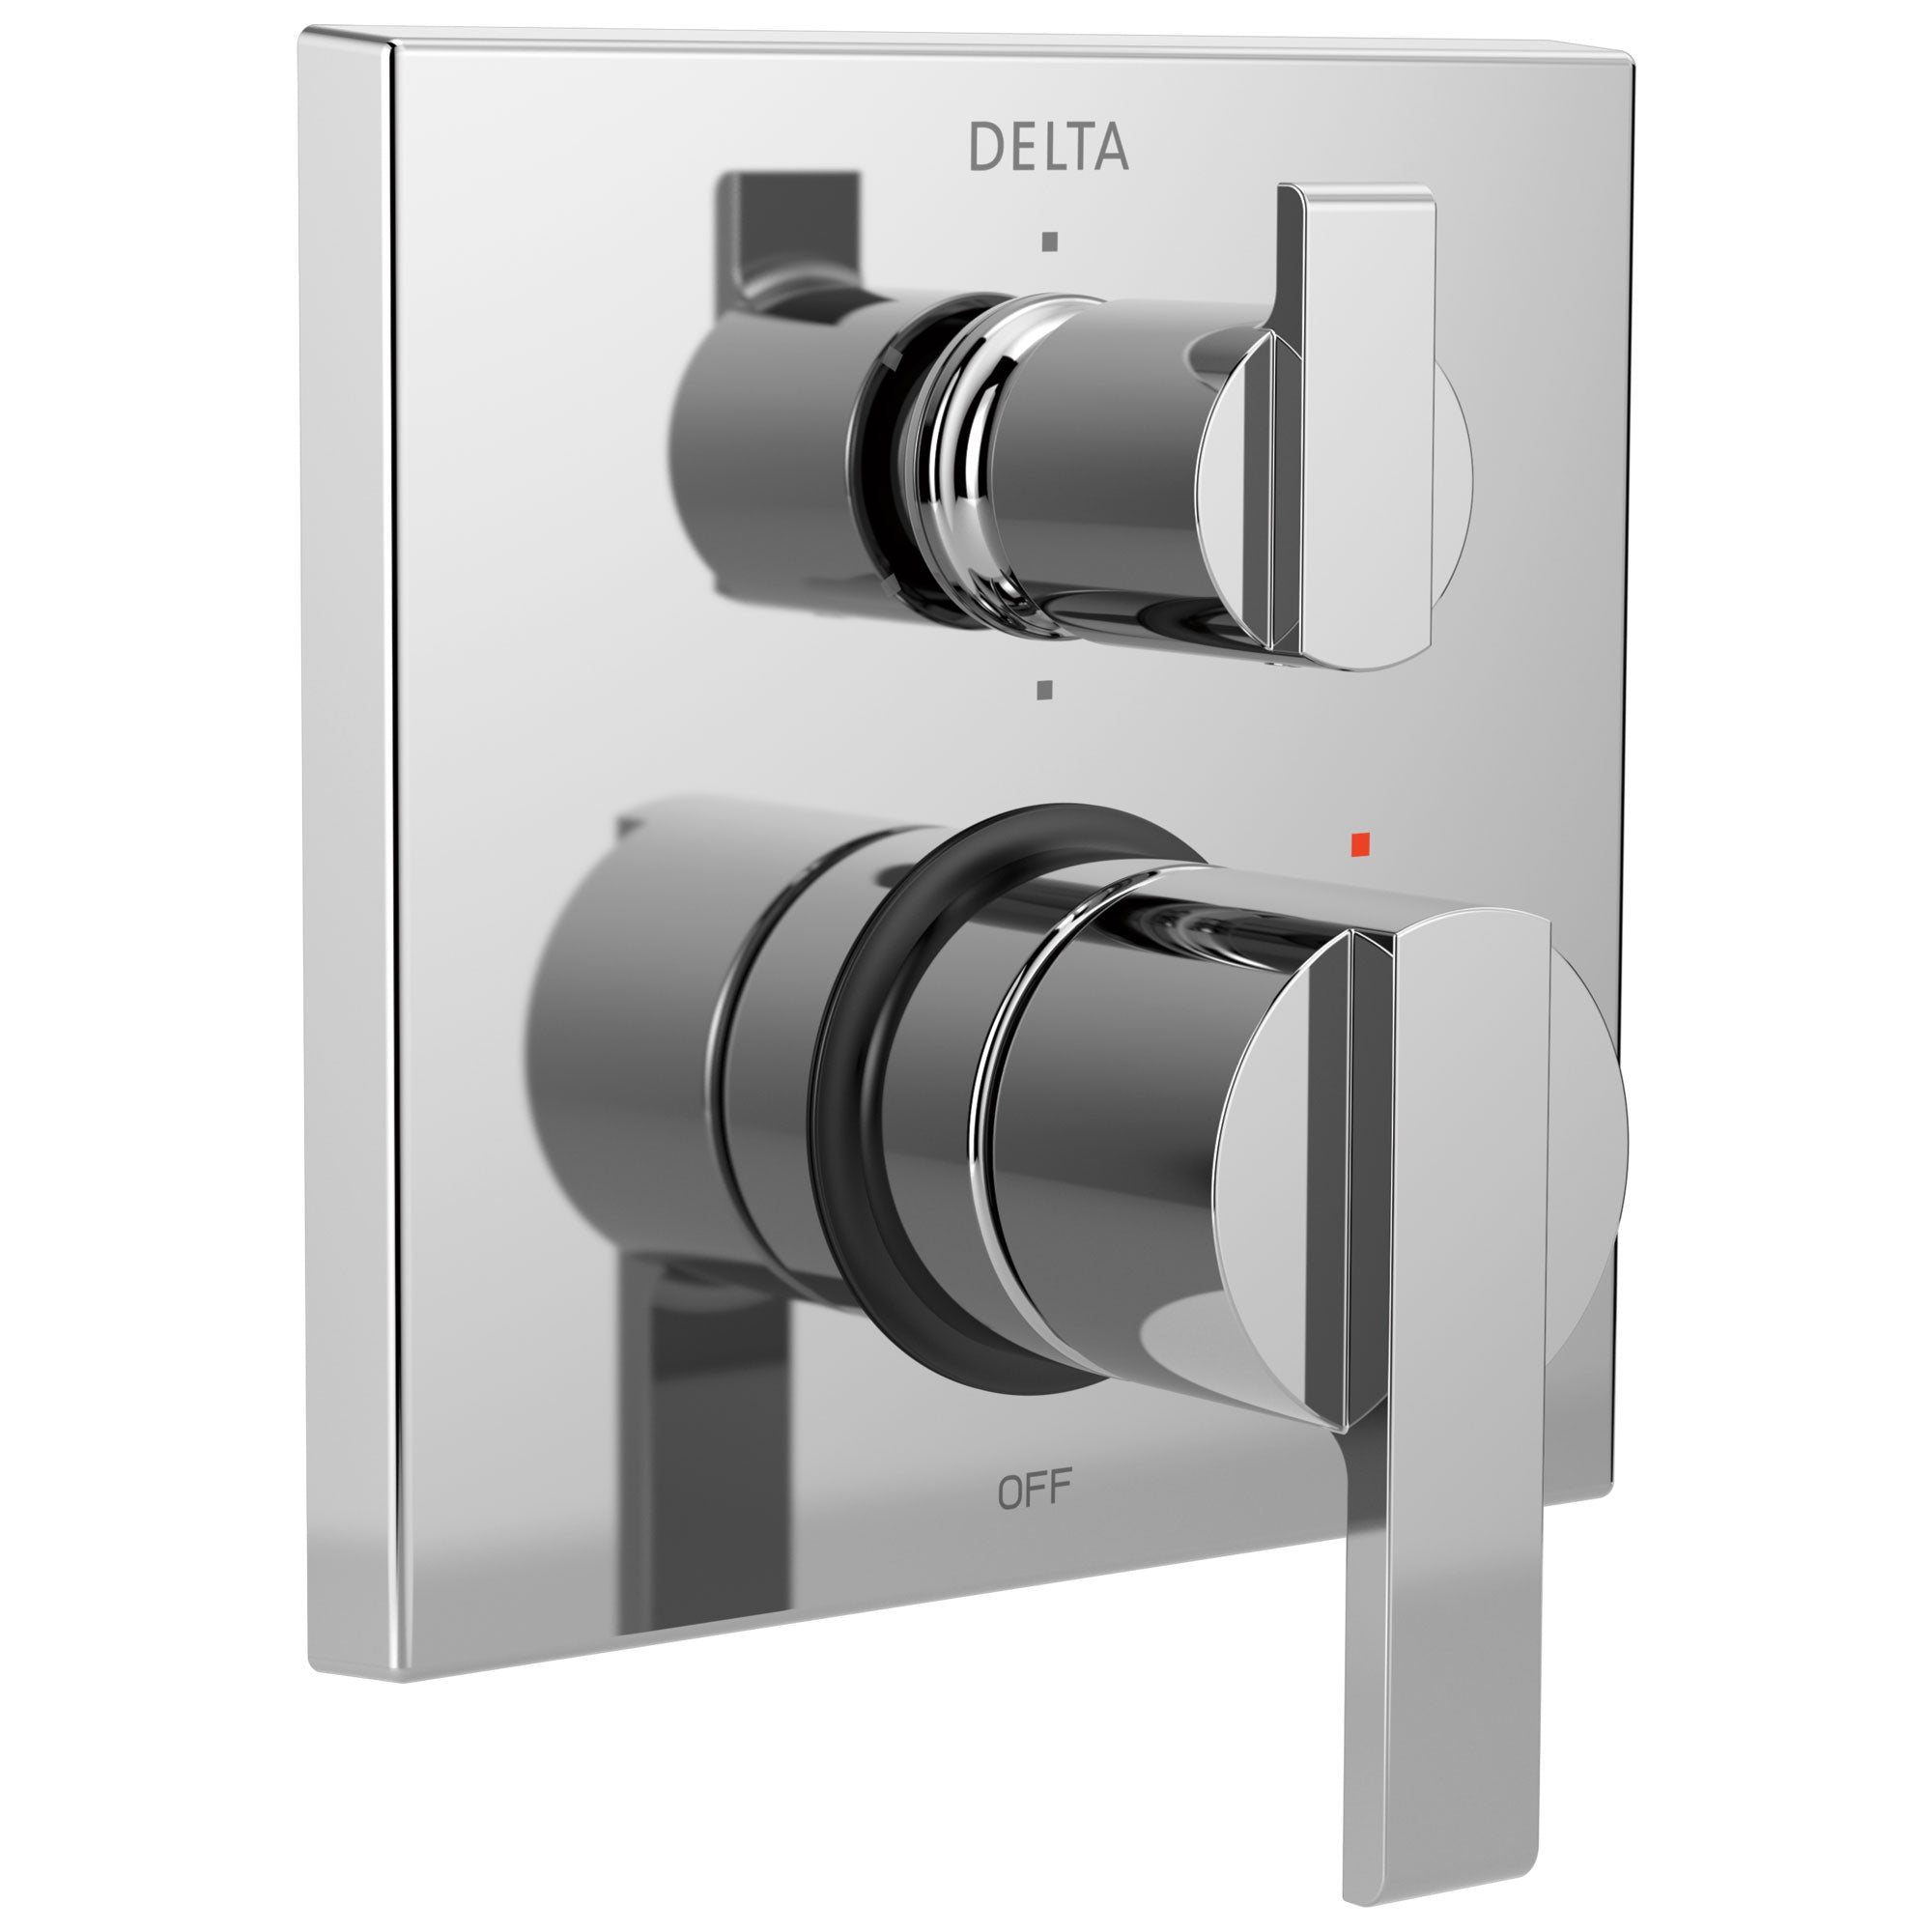 Delta Ara Collection Chrome Angular Modern Monitor 14 Shower Faucet Control Handle with 6-Setting Integrated Diverter Trim (Requires Valve) DT24967